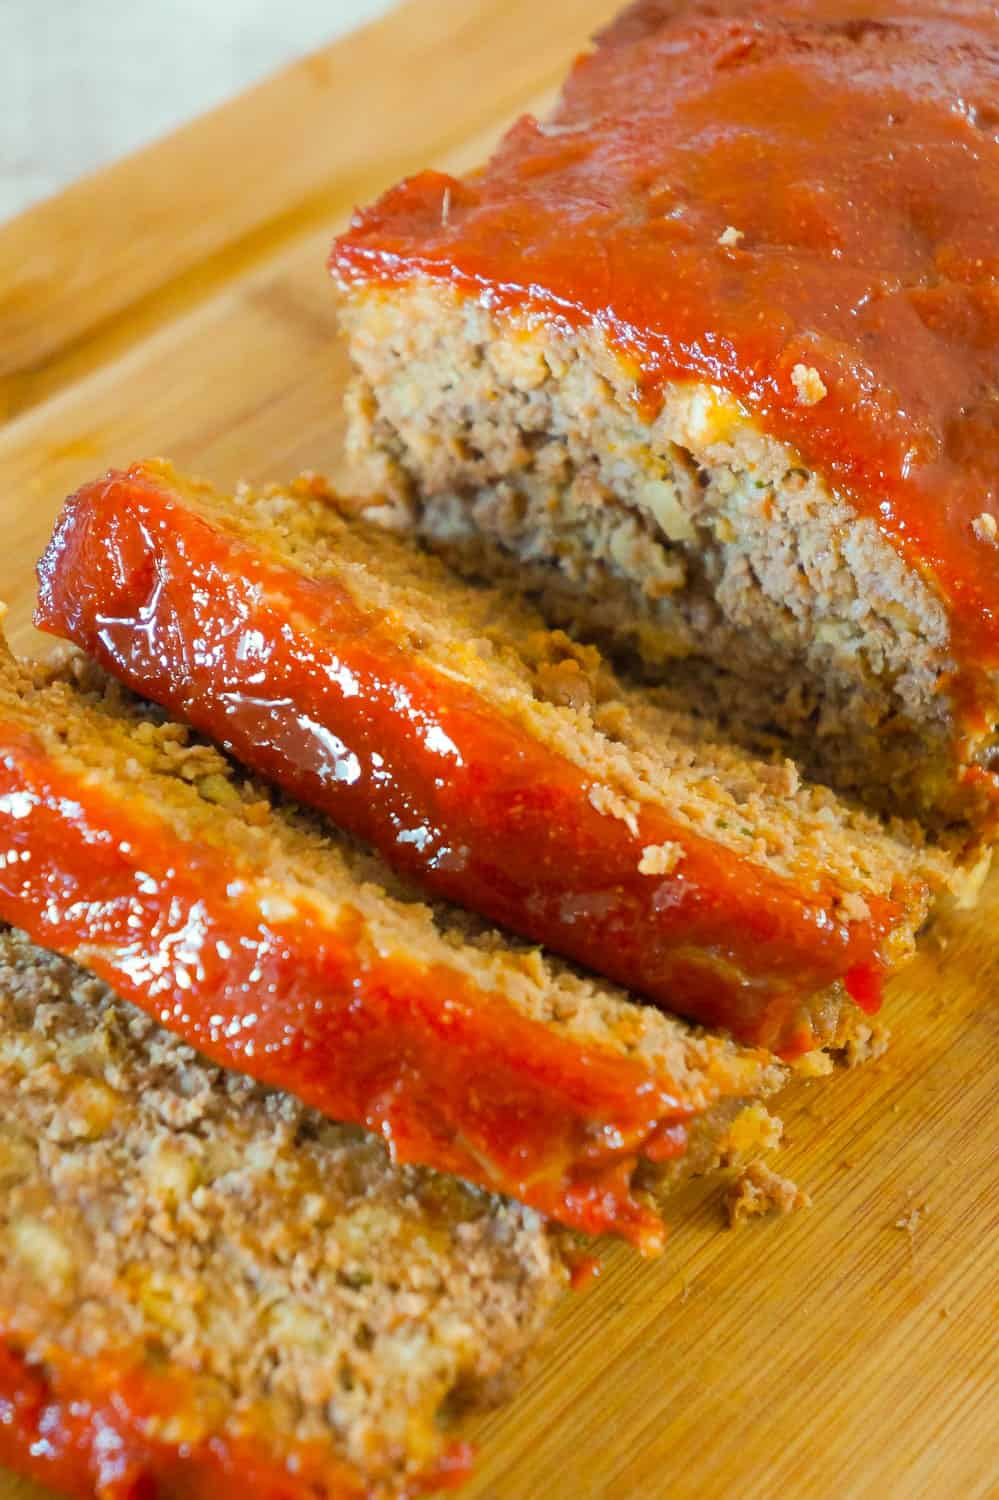 Meatloaf with Stuffing is an easy ground beef dinner recipe the whole family will love. This delicious meatloaf is made with Stove Top Stuffing Mix.